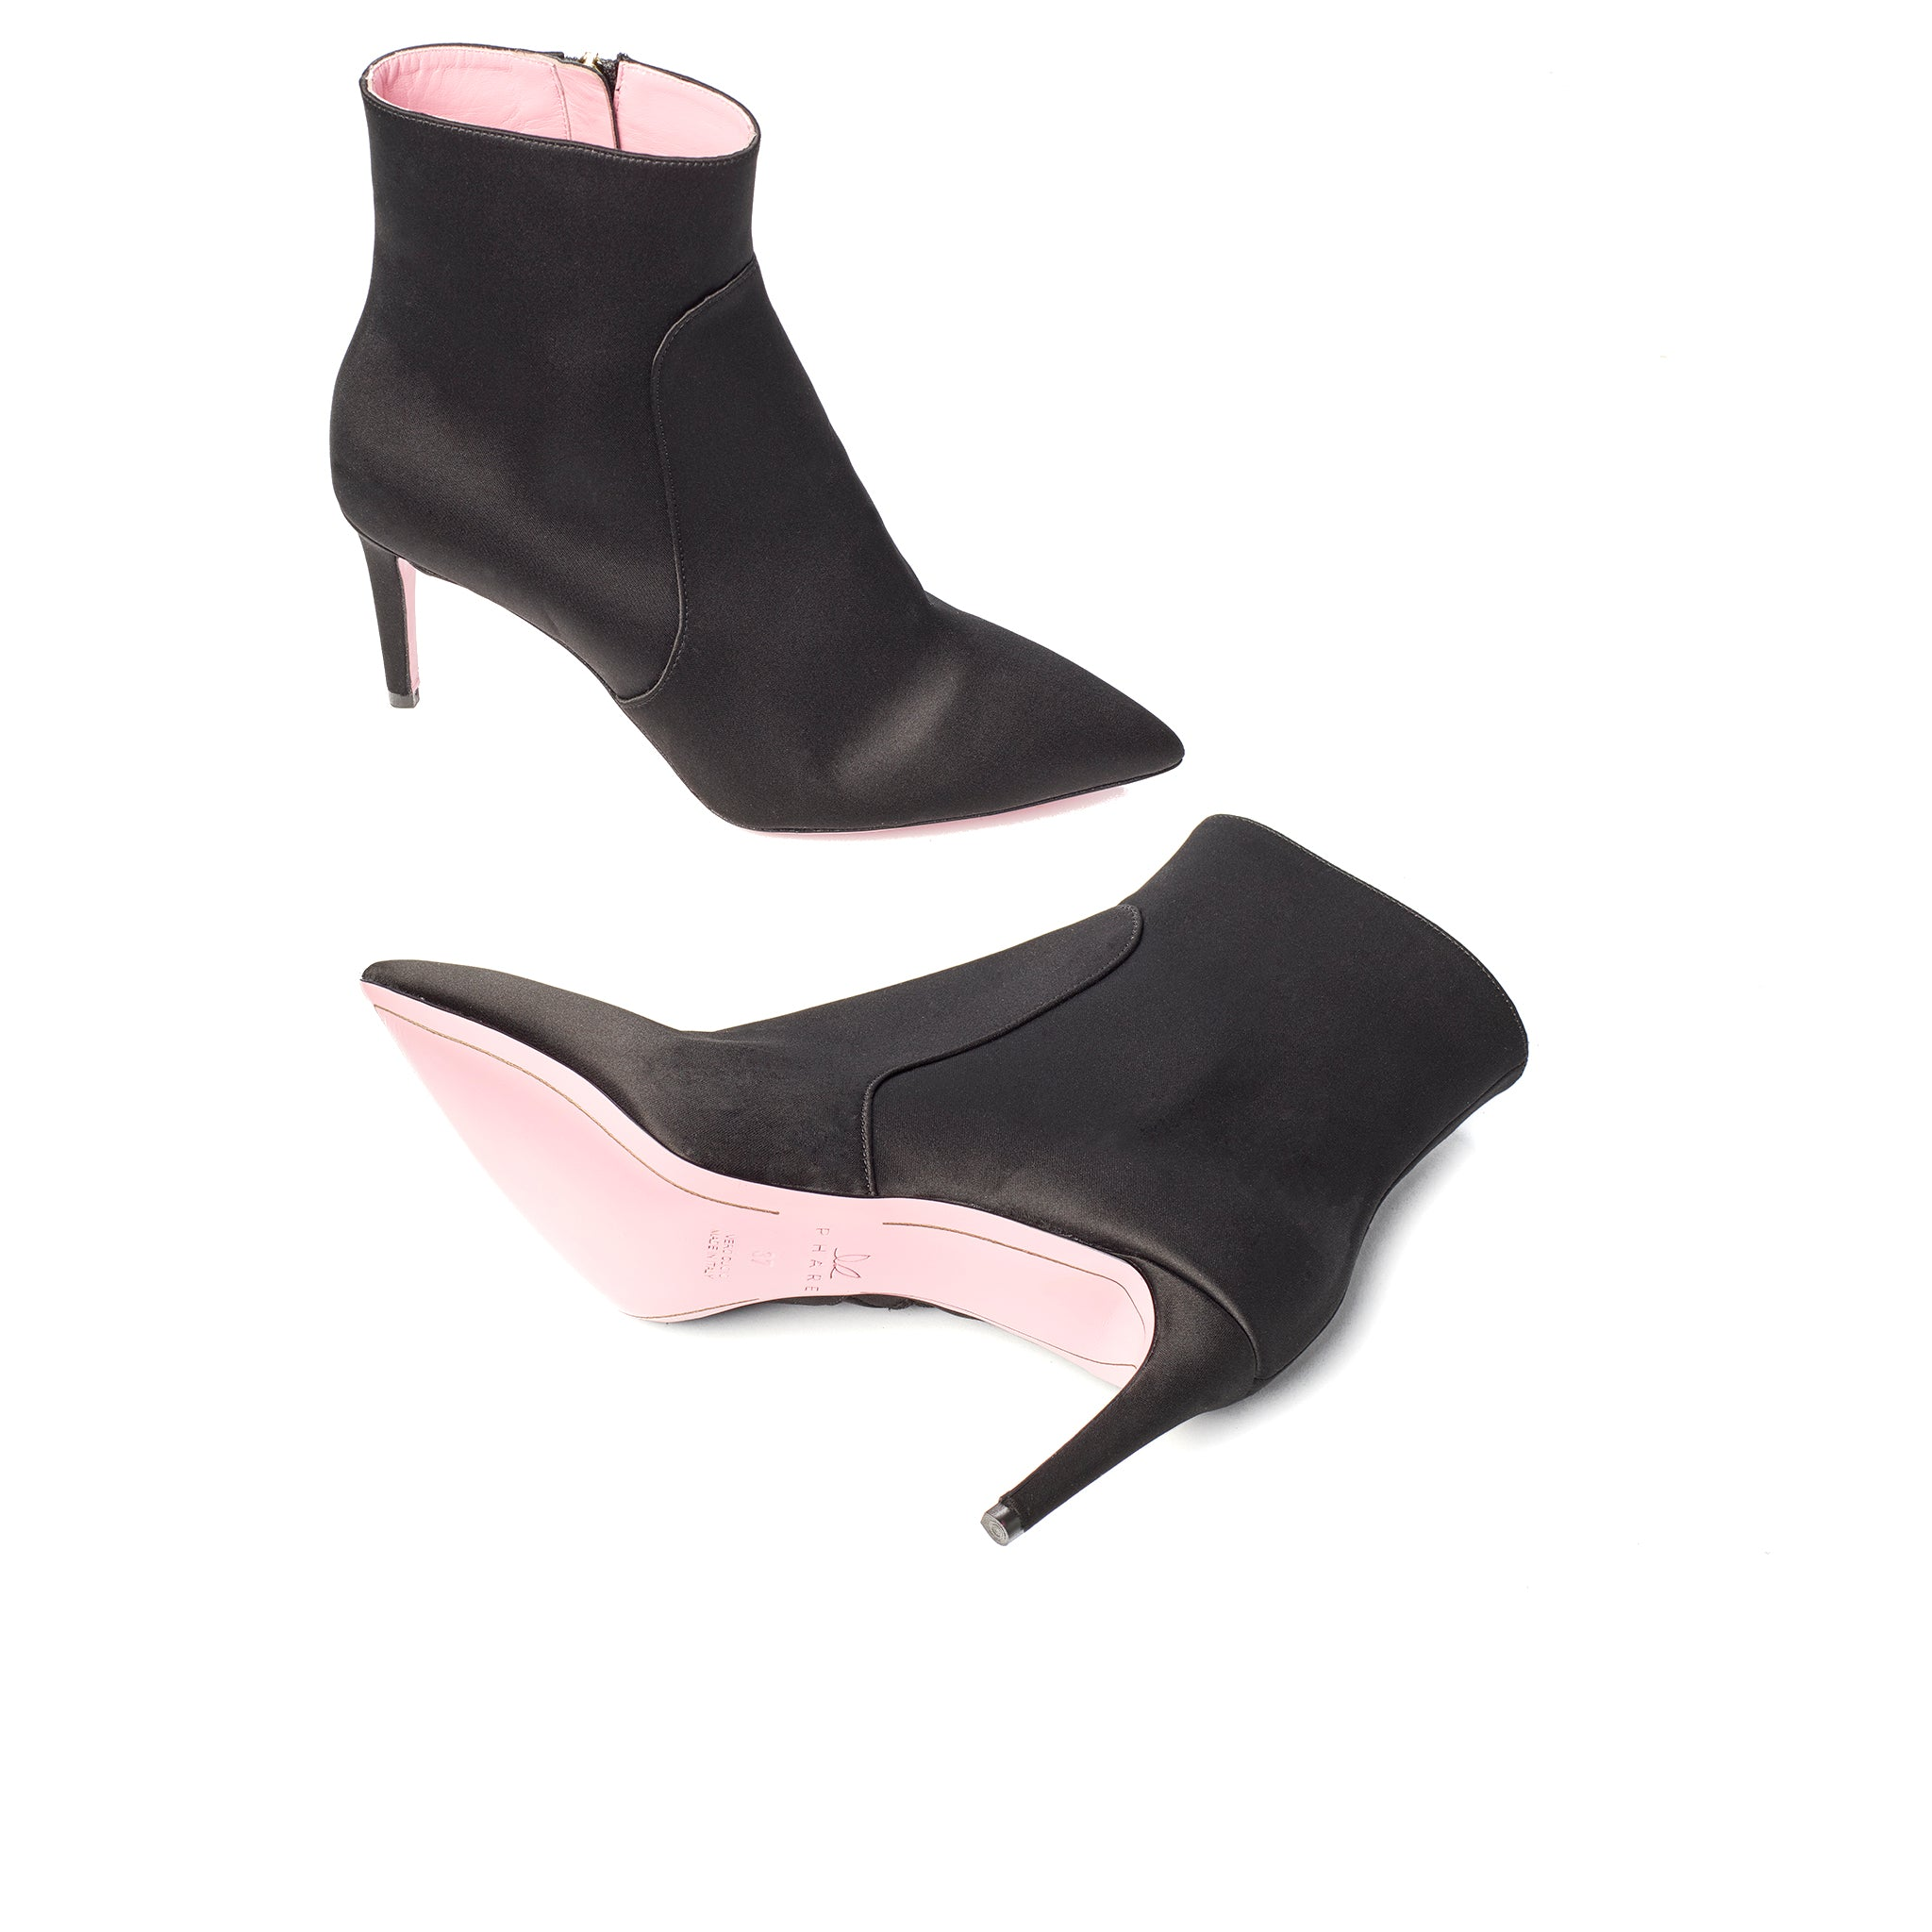 Phare  pointed claasic high heel boot in black silk satin, made in Italy sole view